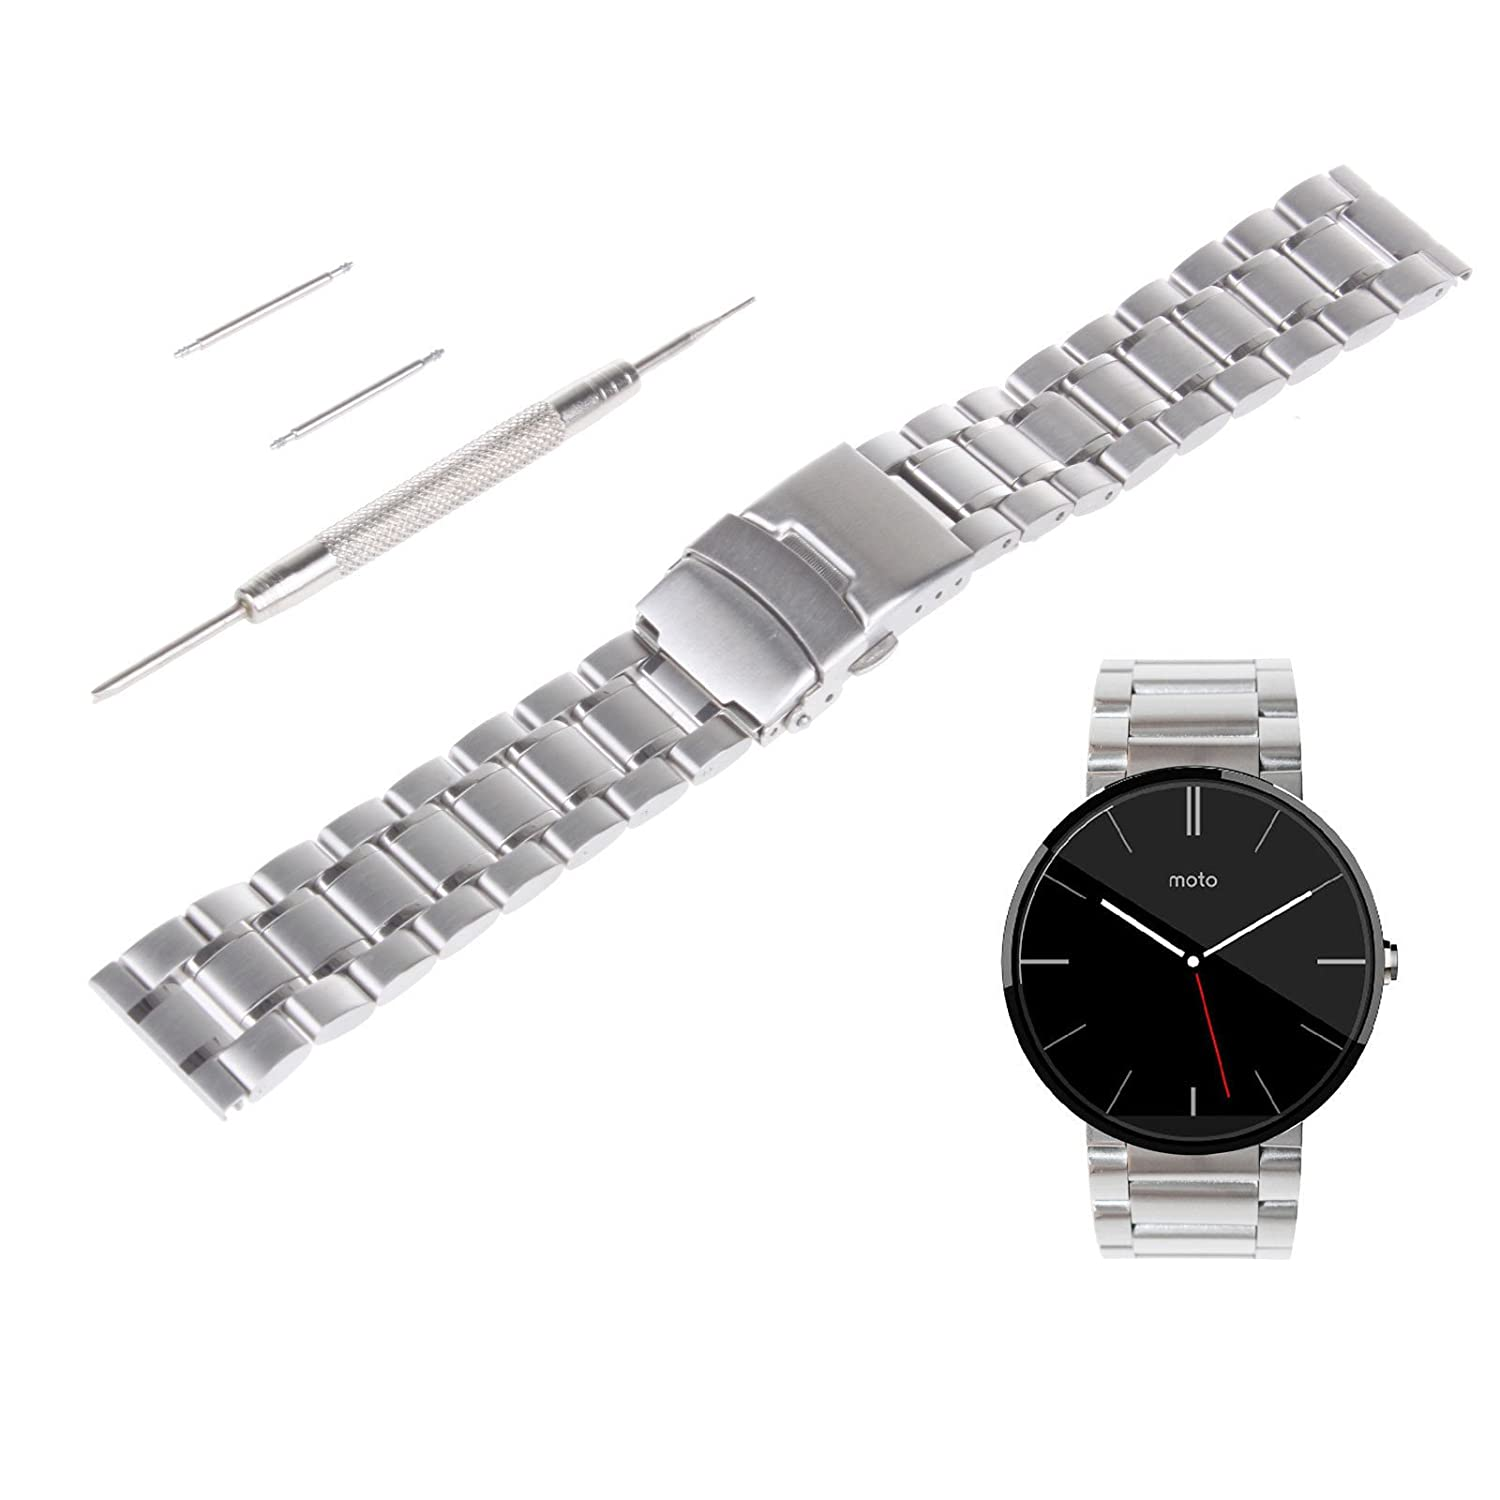 VIMVIP 22mm Stainless Steel Watch Band Strap with Spring Bars Tool for Motorola Moto 360 II 2 Generation Smart Watch 2015 Mens 46mm